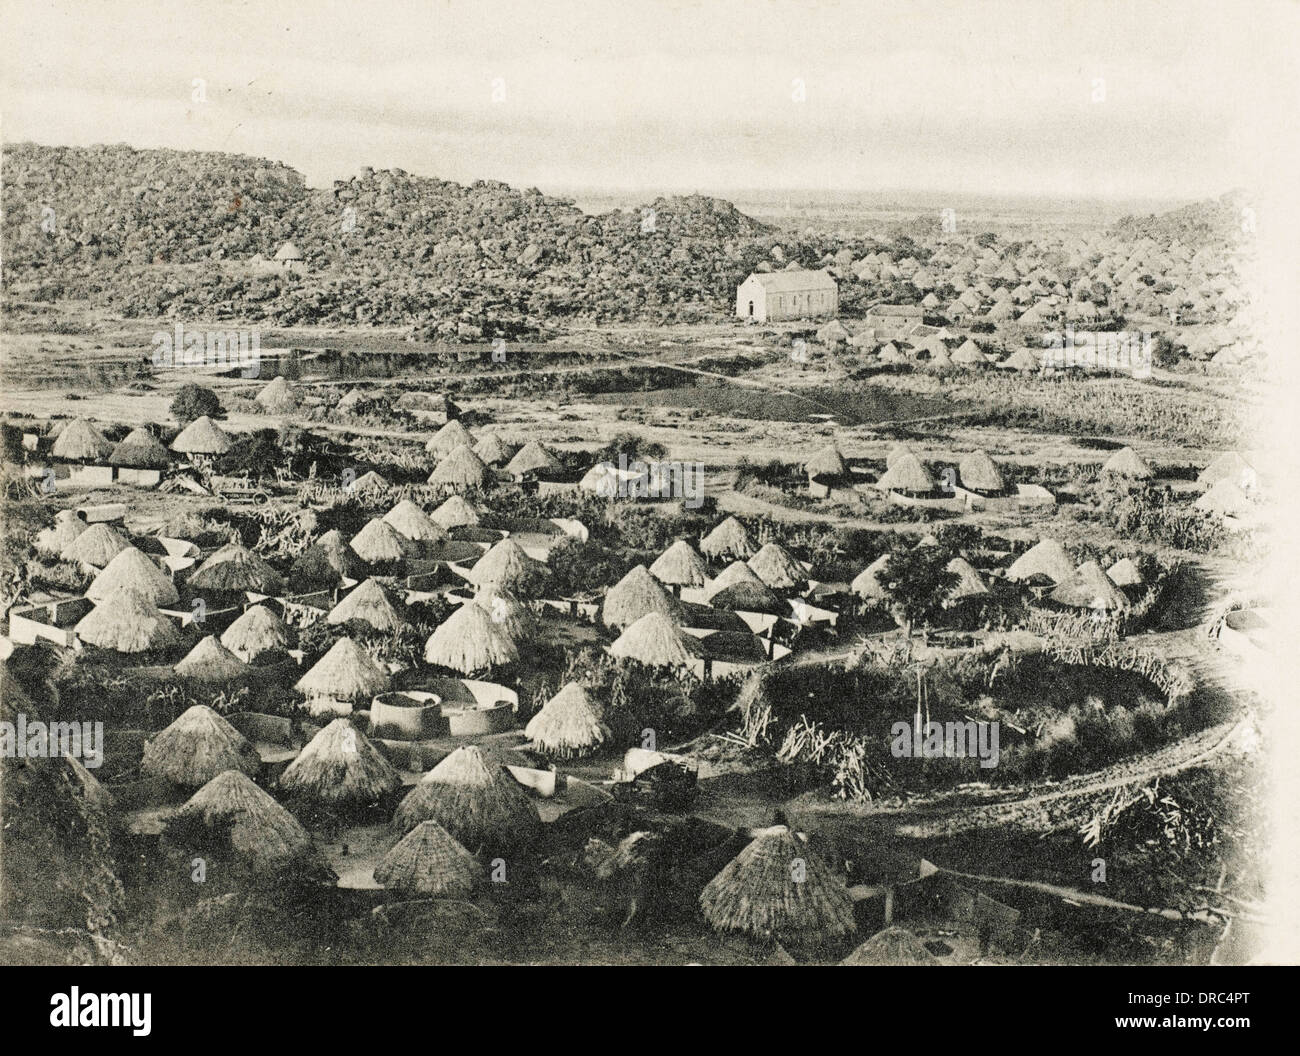 South Africa - Kraal Village in Northern Transvaal - Stock Image